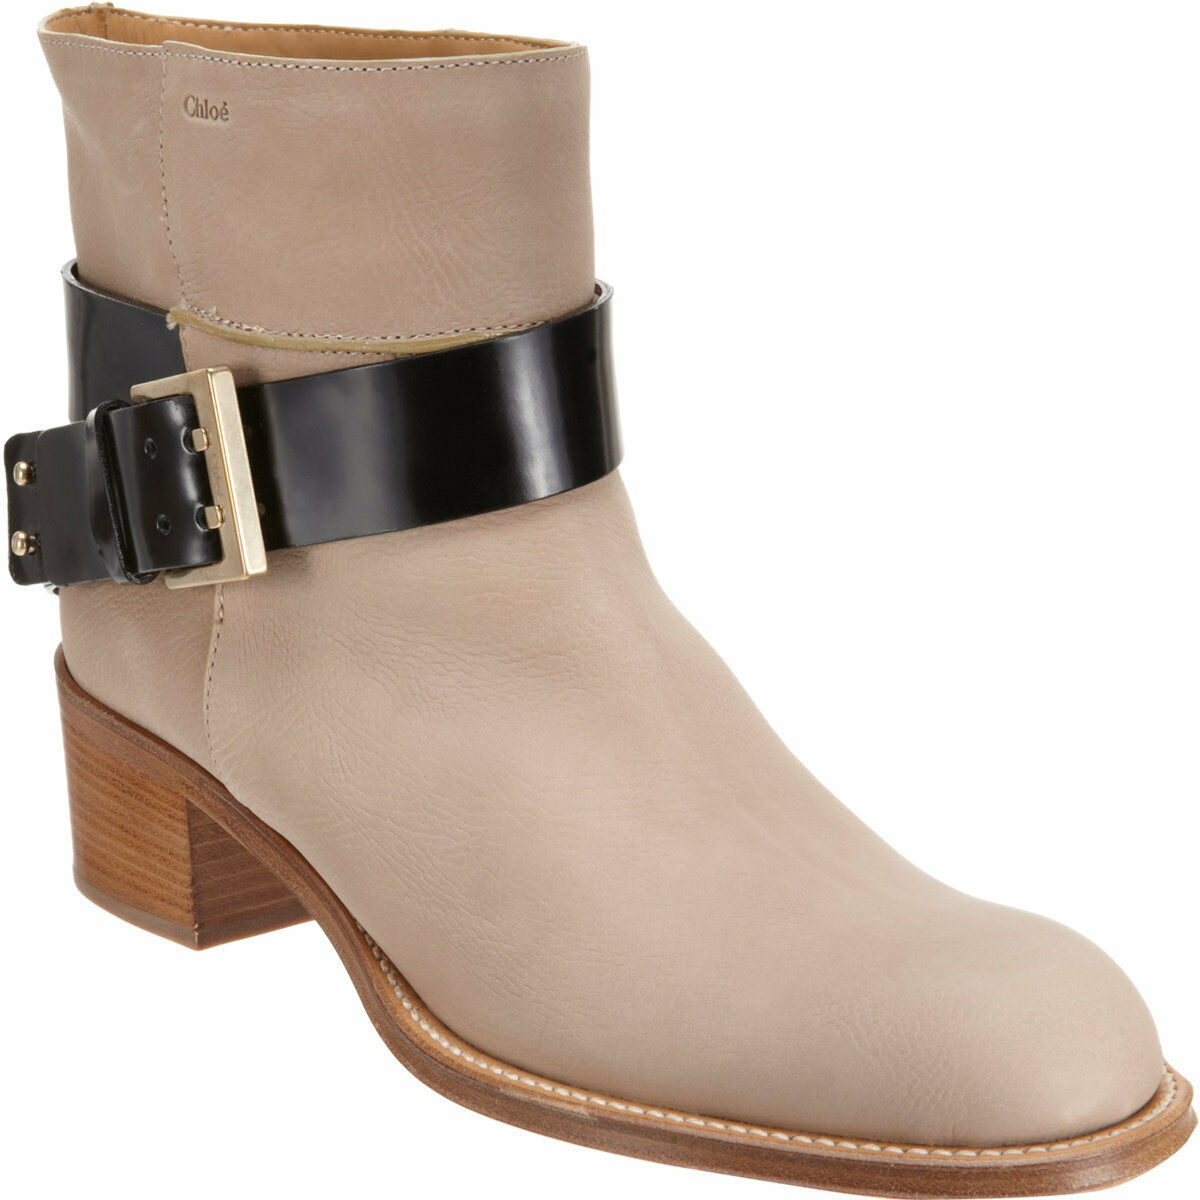 1150 Chloe Buckle Strap Ankle Ankle Ankle Riding Stiefel Motorcycle Biker Stiefelie 6.5-36.5 9027ca